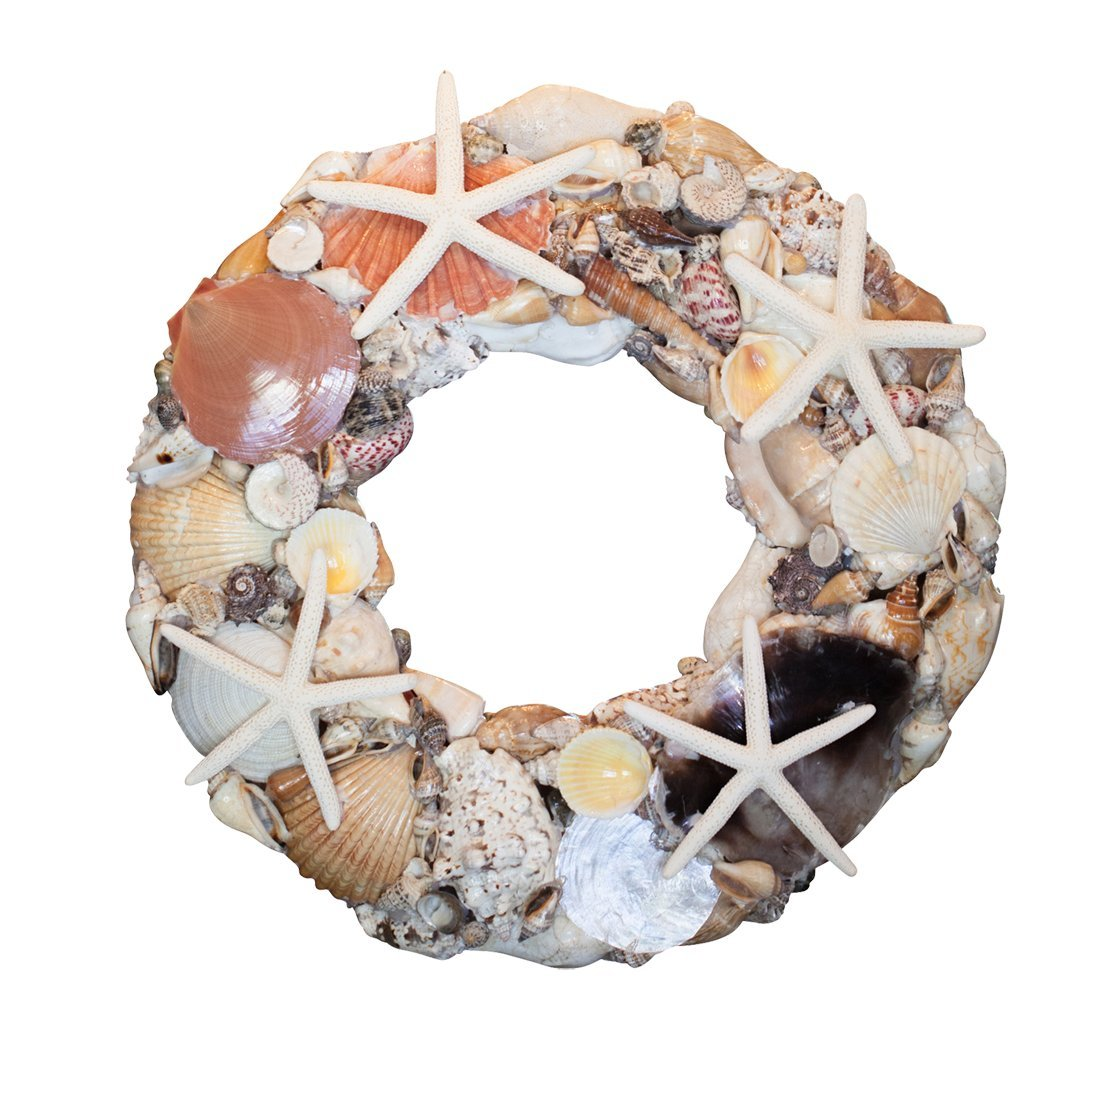 14'' Shell Wreath-Starfish & Seashells Coastal Beach Home Decor, Christmas Ornaments, Weddings & more